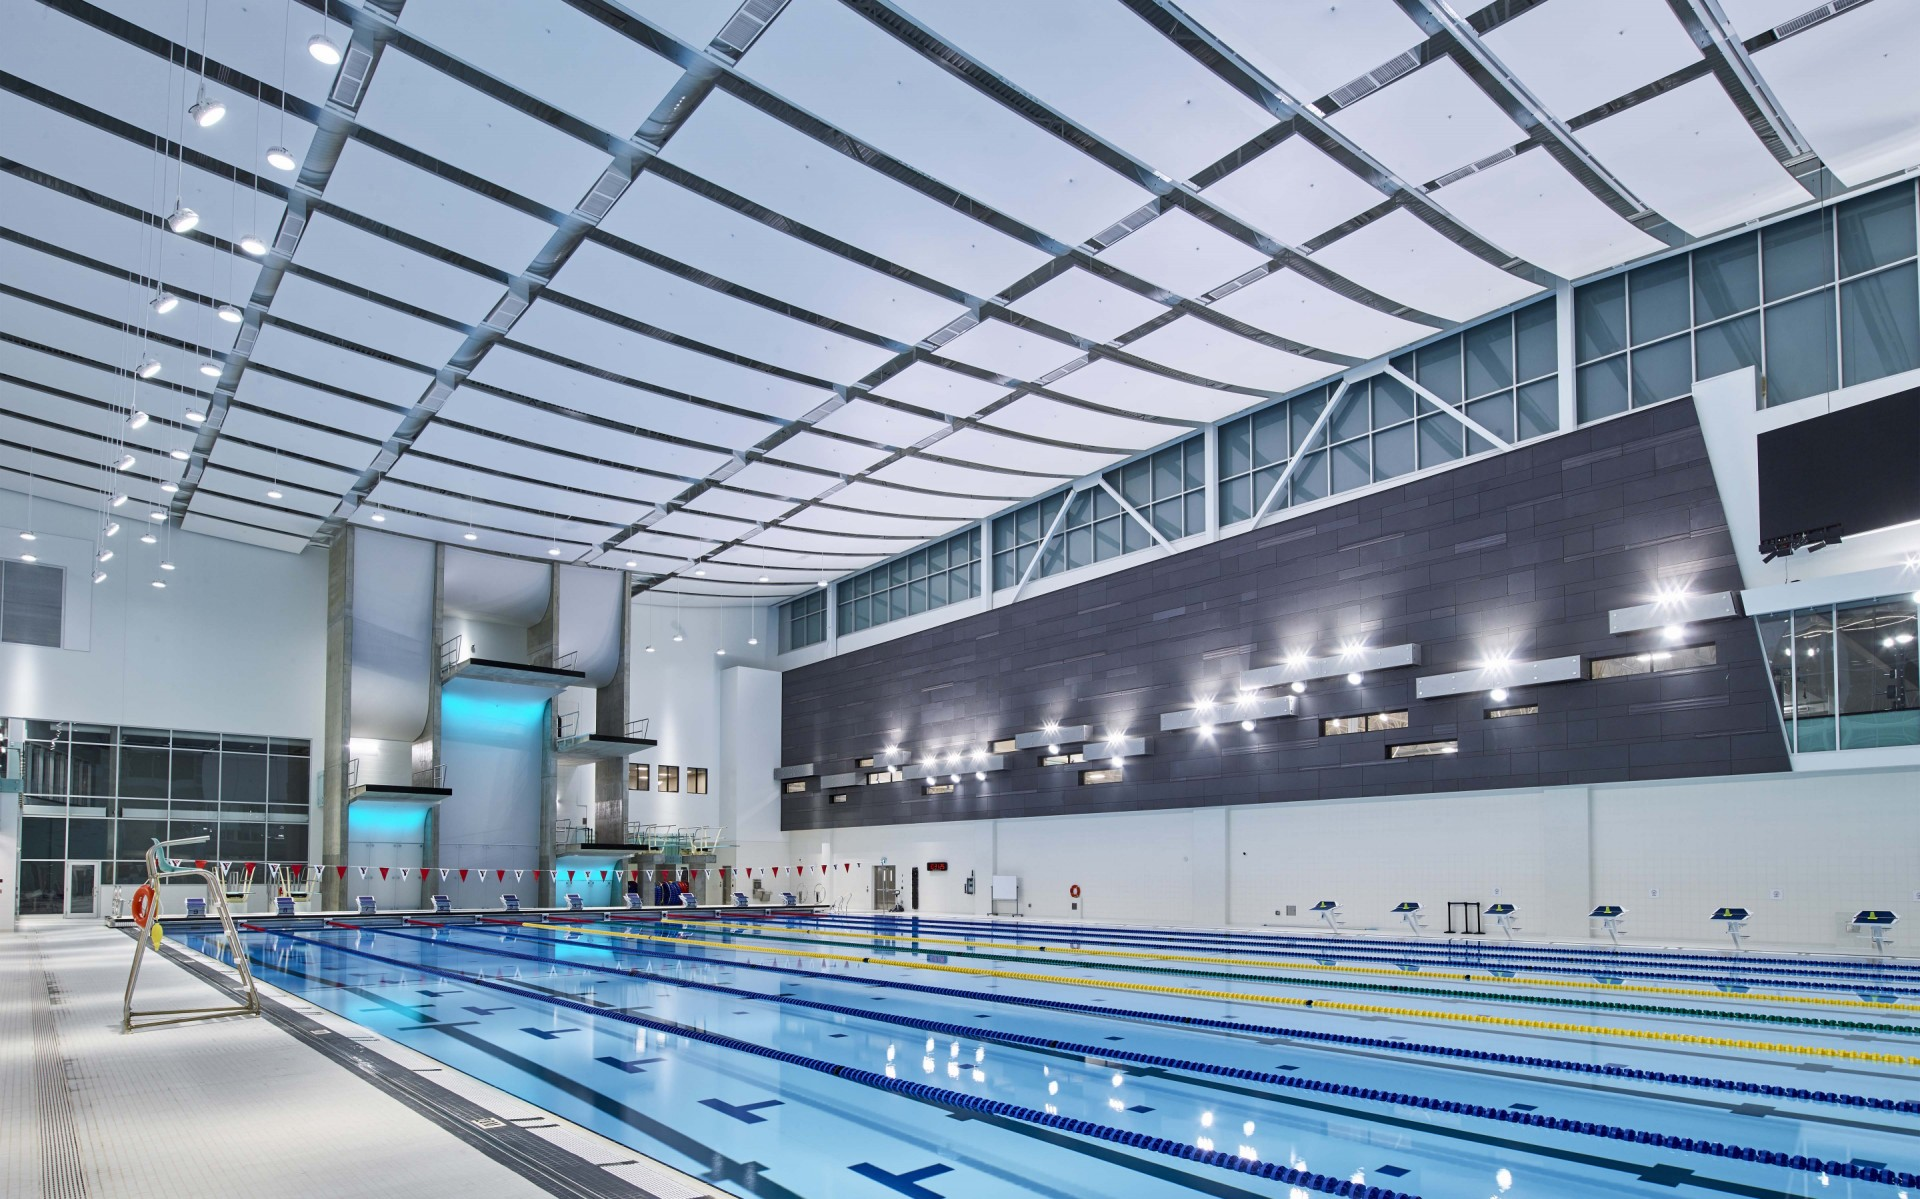 While the majority of Lumenbeam Extra Large luminaires are pendant mounted from the ceiling, others were yoke-mounted of the walls and aimed to provide more precise illumination. – Ian Grant